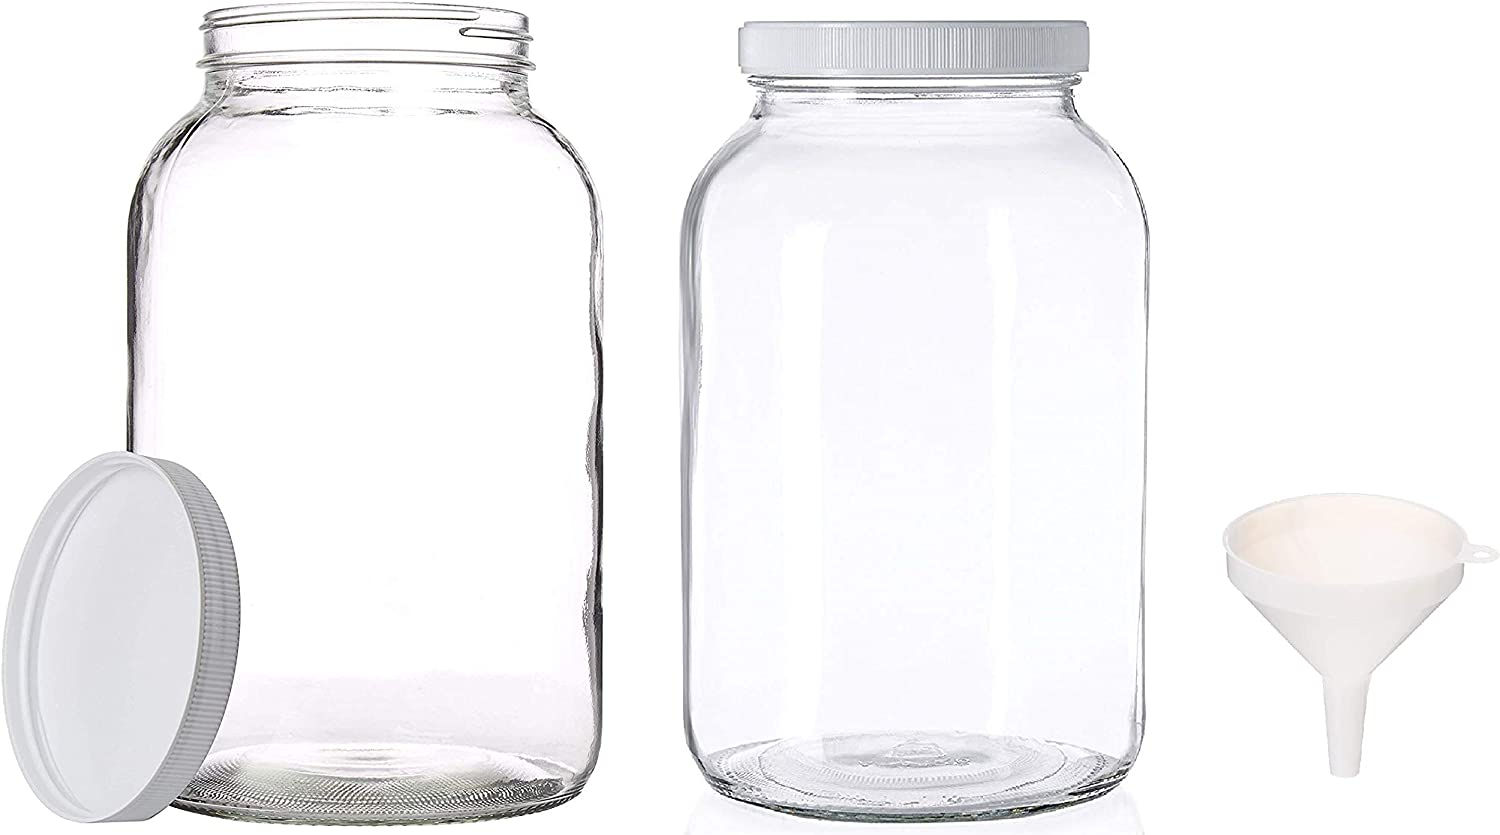 2 Pack - 1 Gallon Glass Mason Jar Brewing and Fermenting Set - Plastic Lids- Wide Mouth Neck with Funnel for Easy Bottling and Pouring - Safe for Kombucha, Kefir and Canning BPA Free By Kitchentoolz